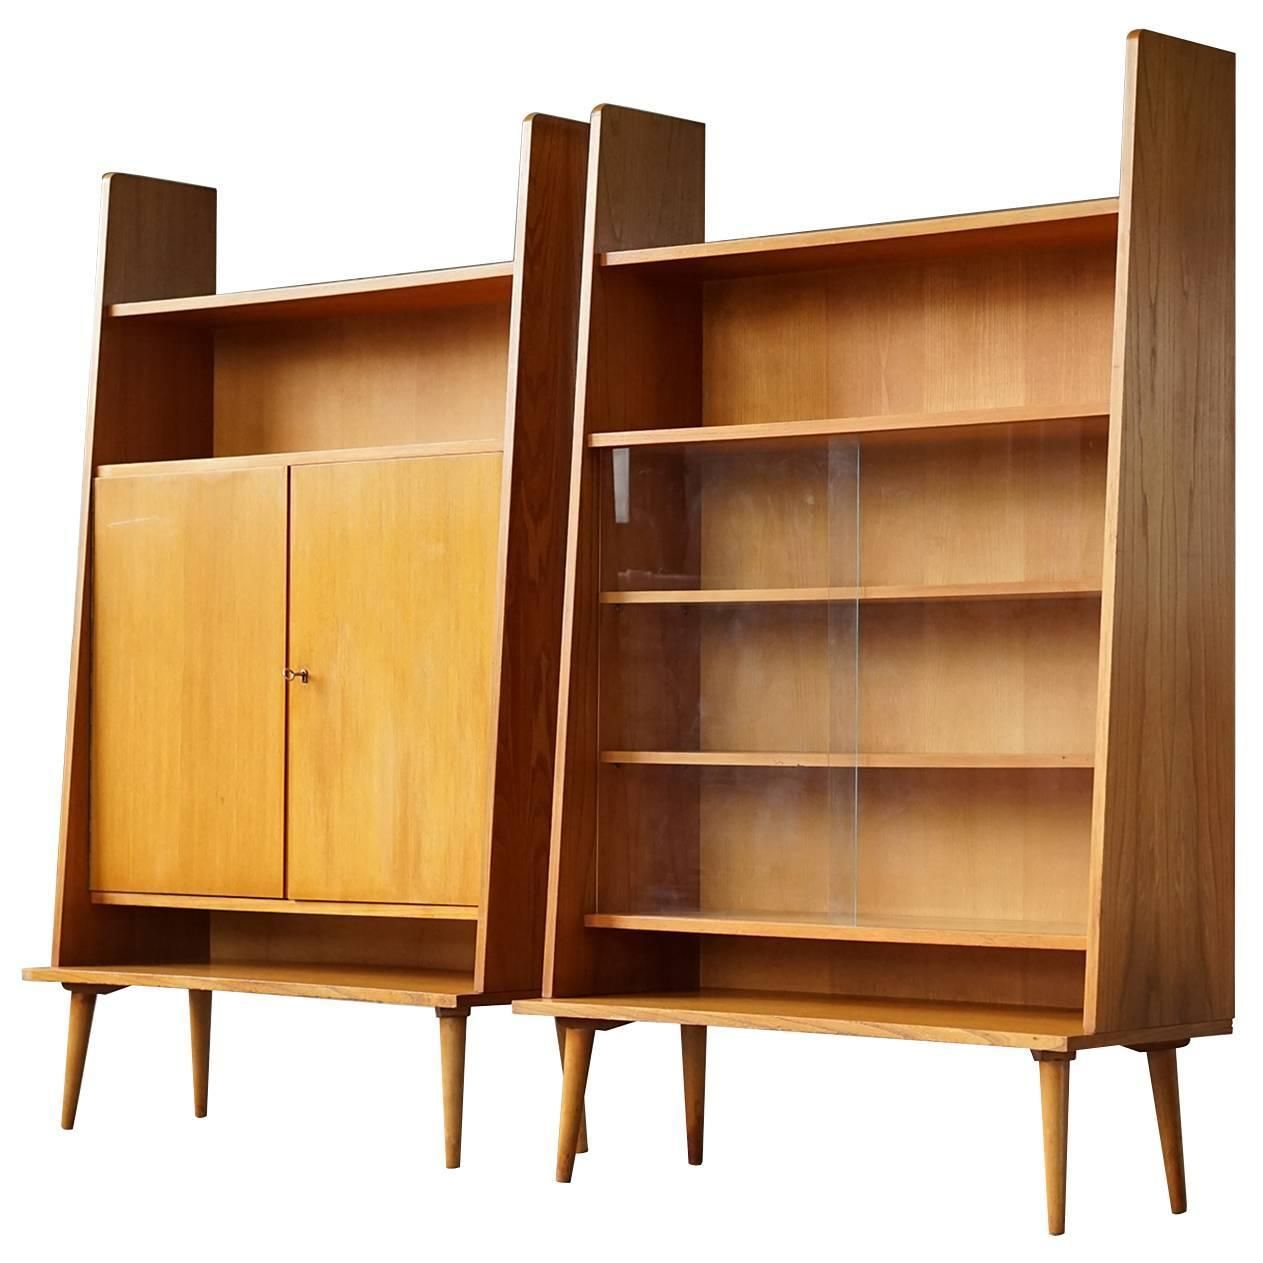 Cees Braakman DU03 Sideboard Pastoe UMS, 1958 | Furniture storage, Storage  and Modern